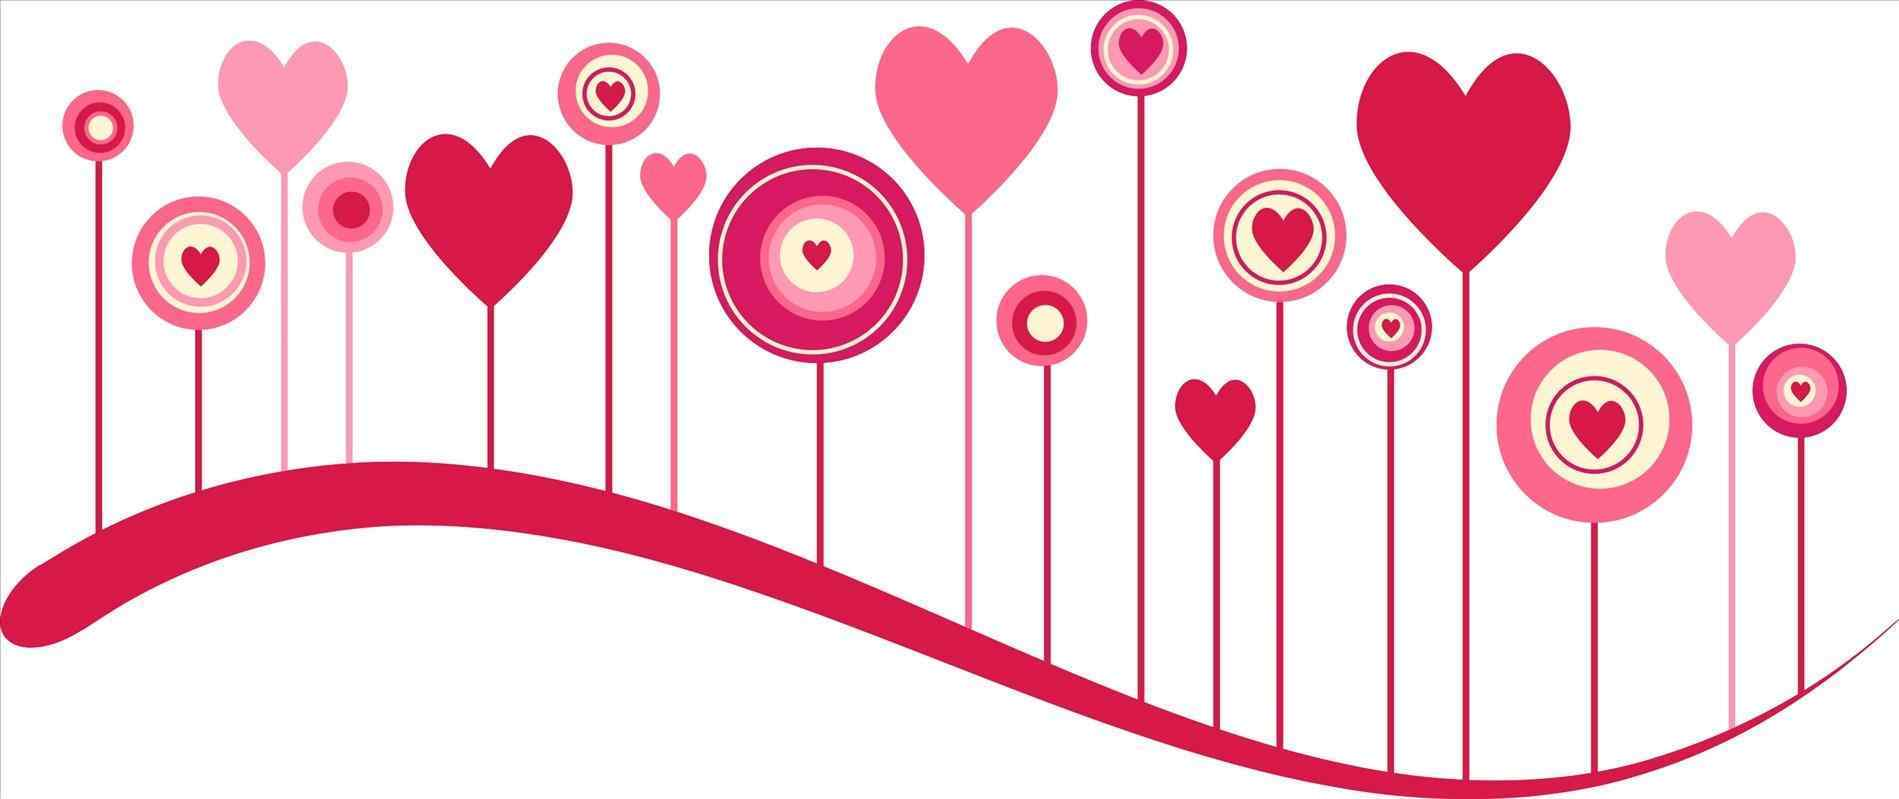 Valentines day borders incep. Border clipart horizontal